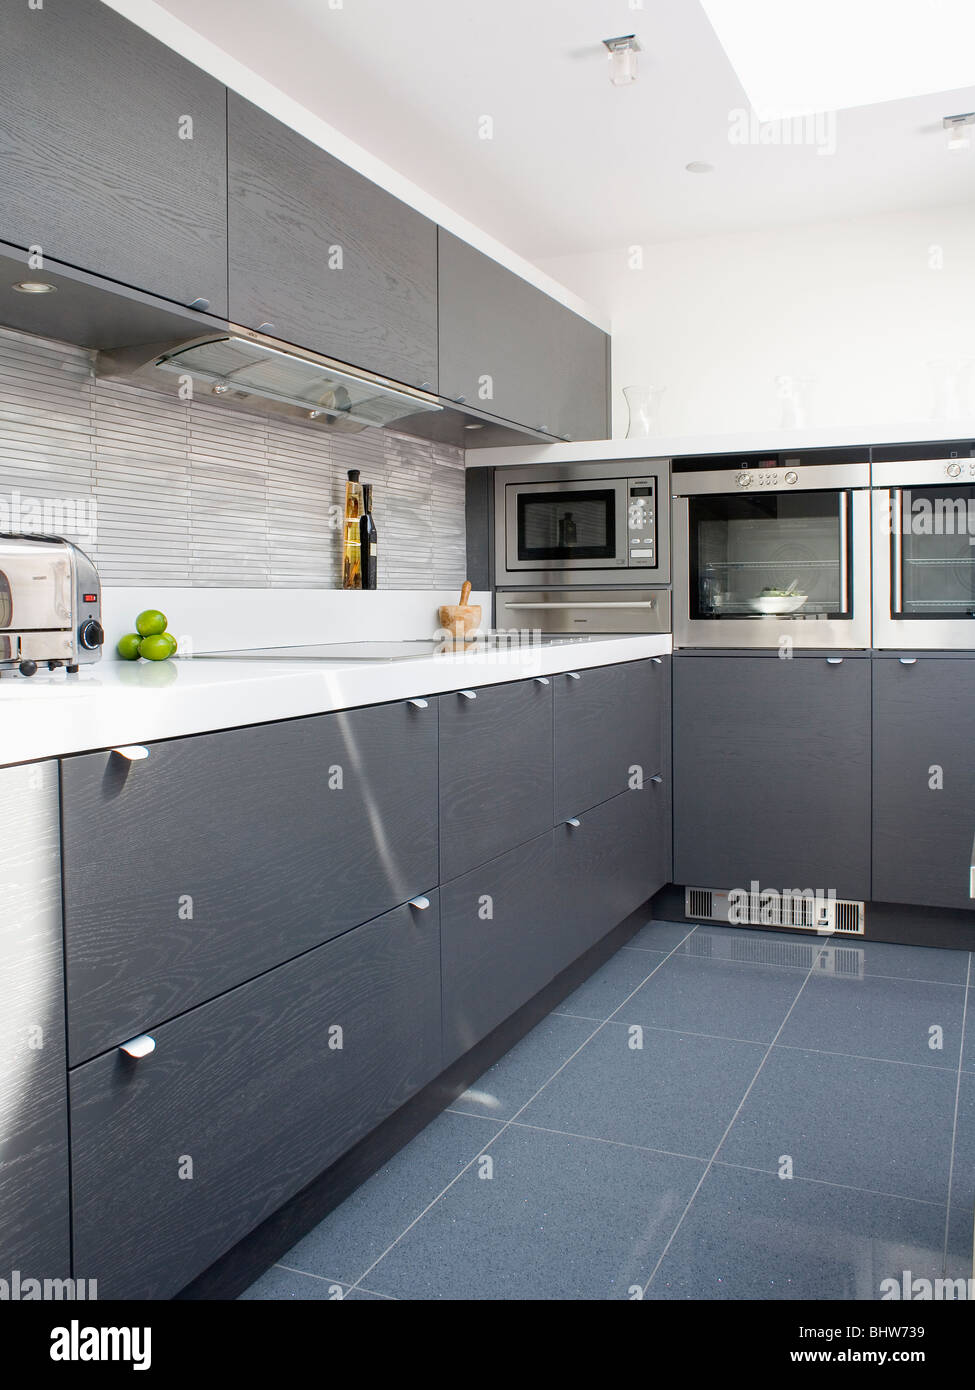 grey ceramic floor tiles in modern white kitchen with dark gray stock